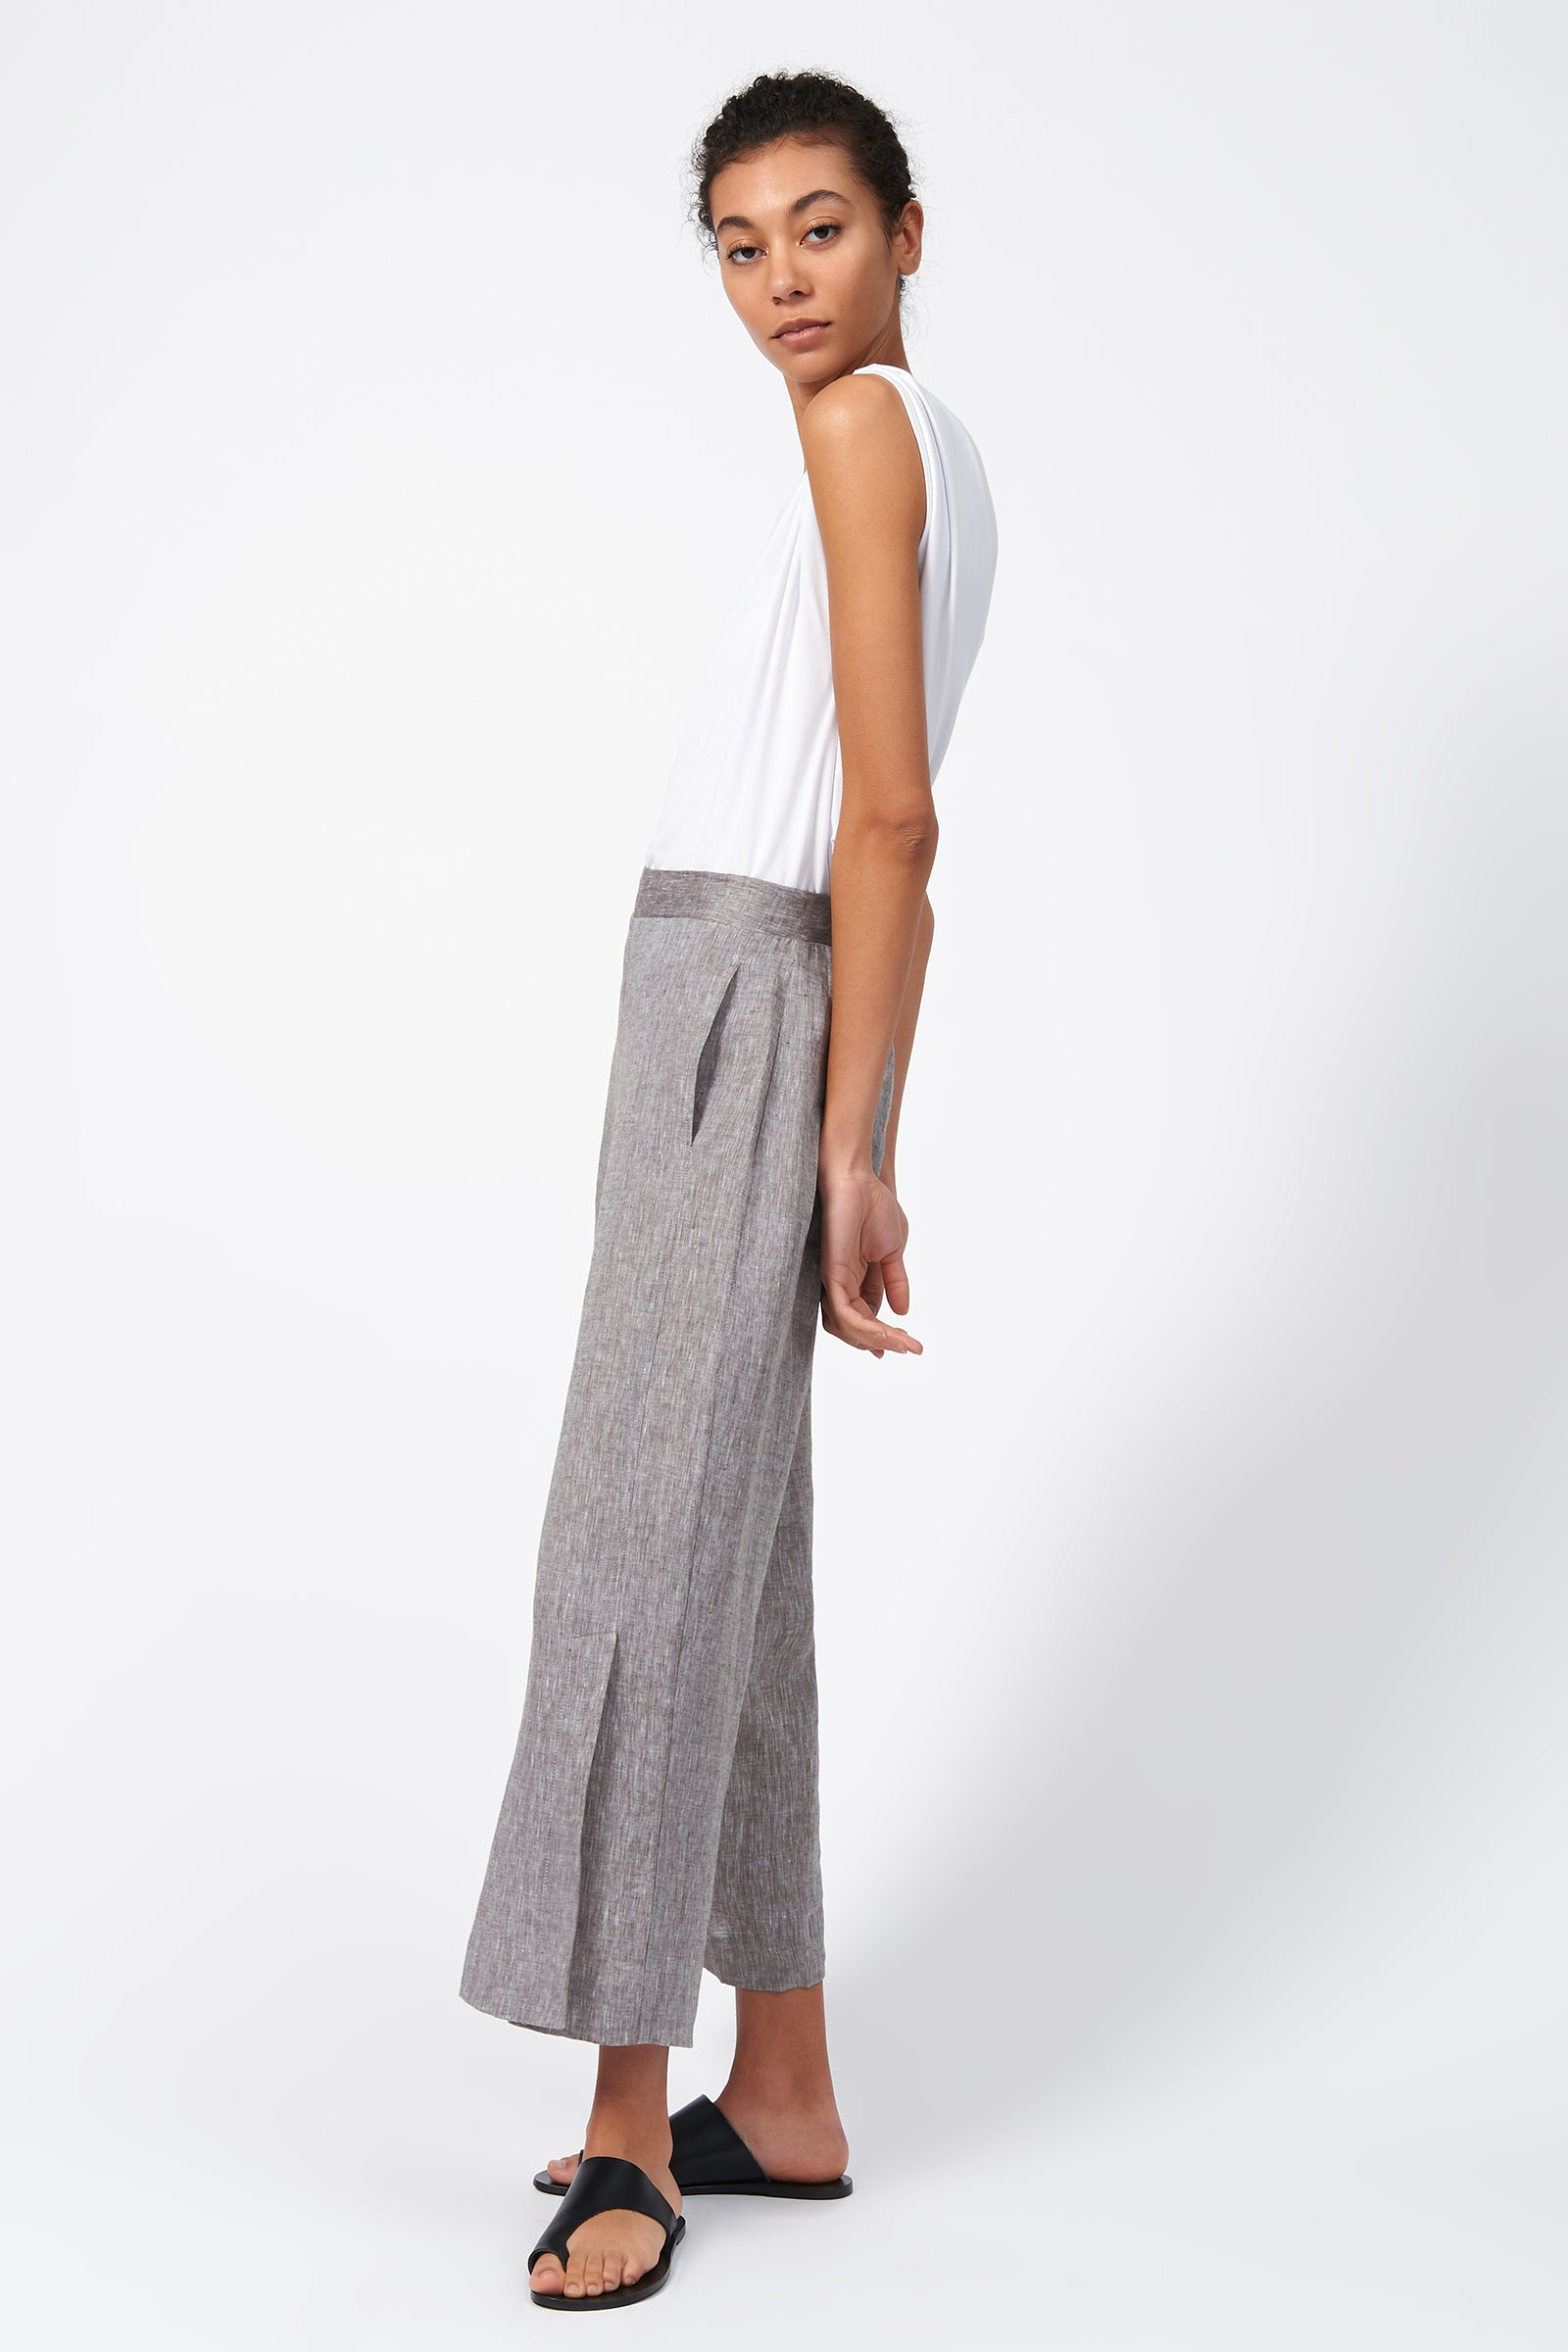 Kal Rieman Linen Side Kick Pant in Brown on Model Full Side View